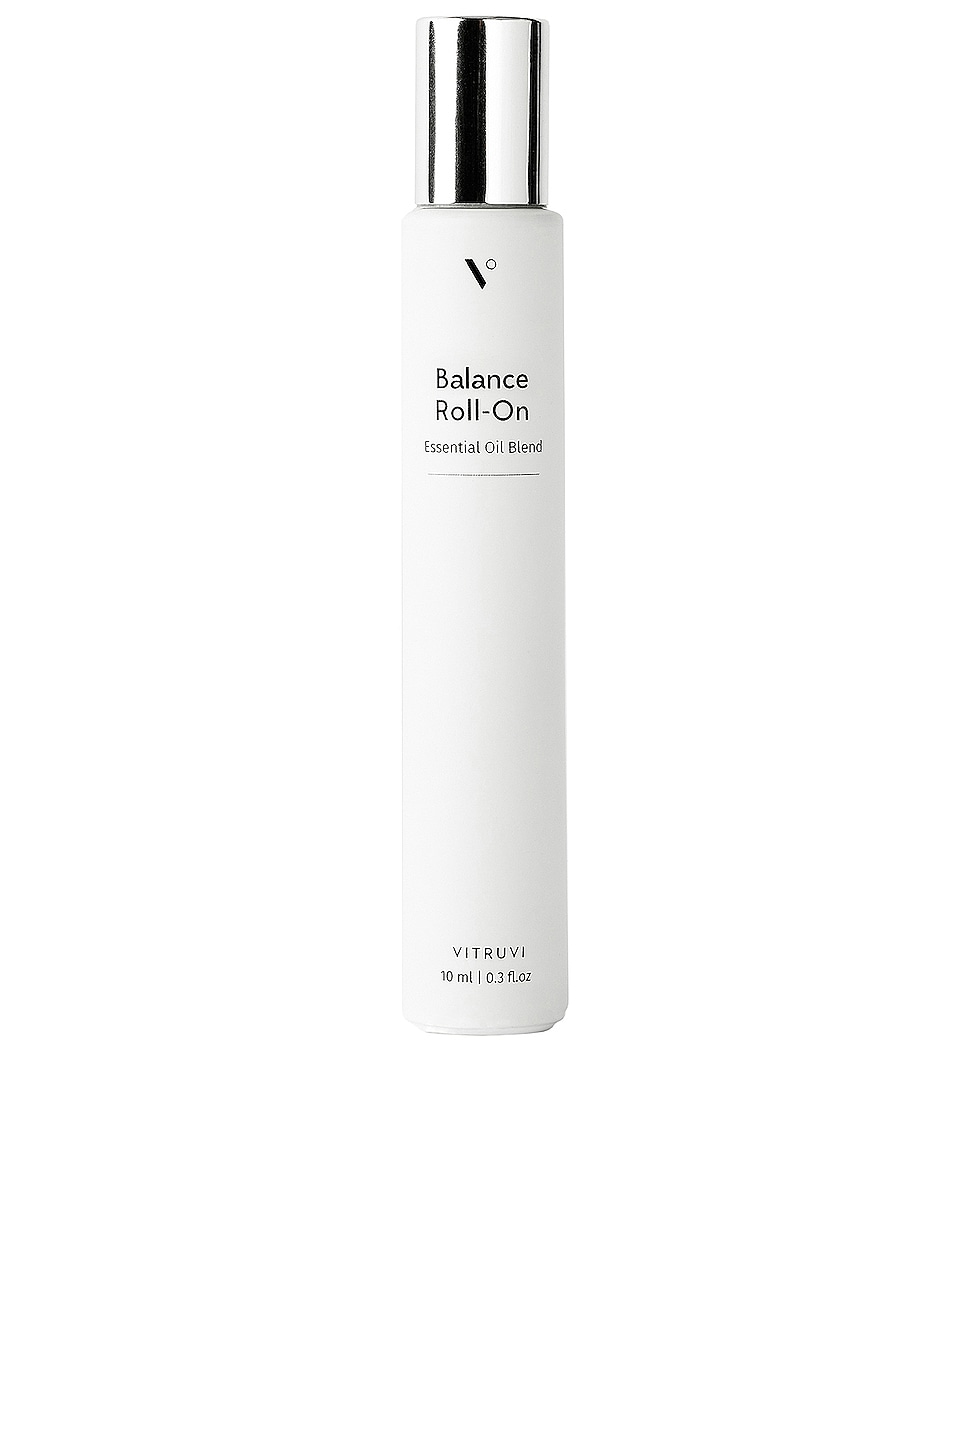 VITRUVI Balance Aromatherapy Roll-On Oil